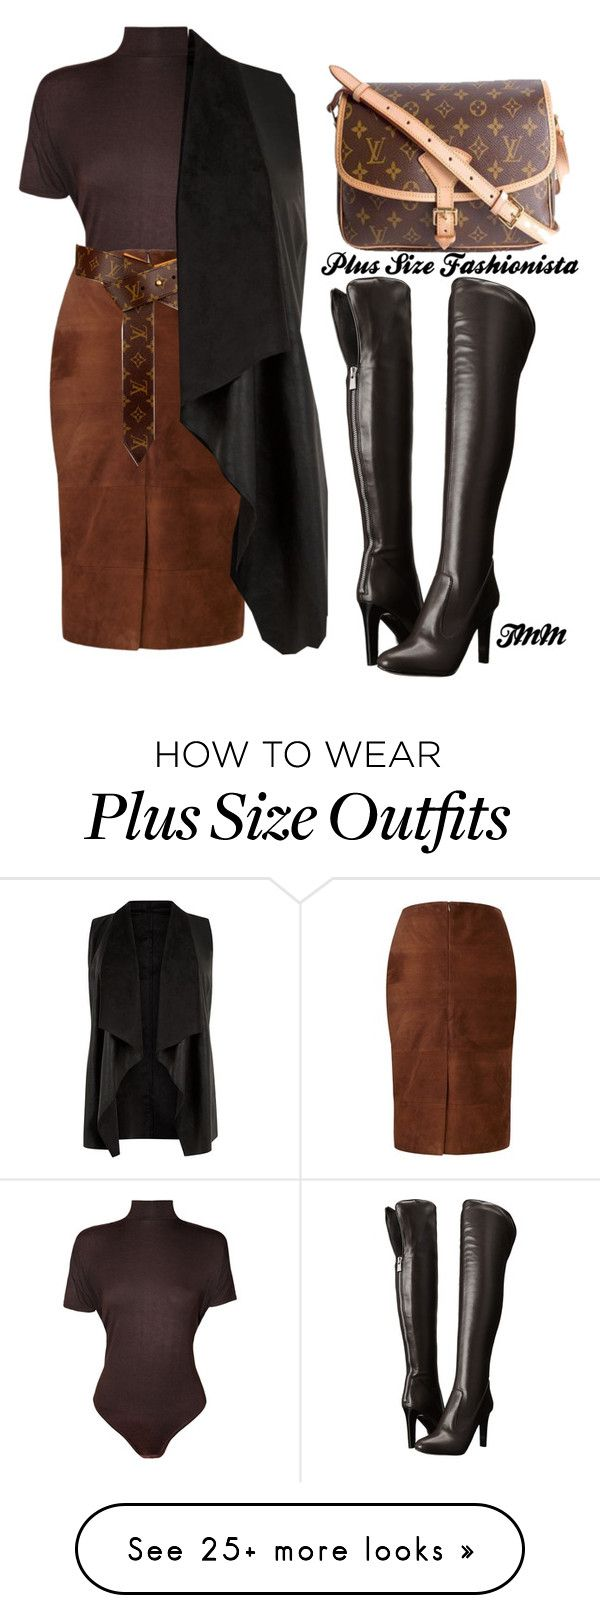 """""""Plus Size Fashionistas"""" by theblushingbeauty on Polyvore featuring WearAll, Viyella, Louis Vuitton and Nine West"""